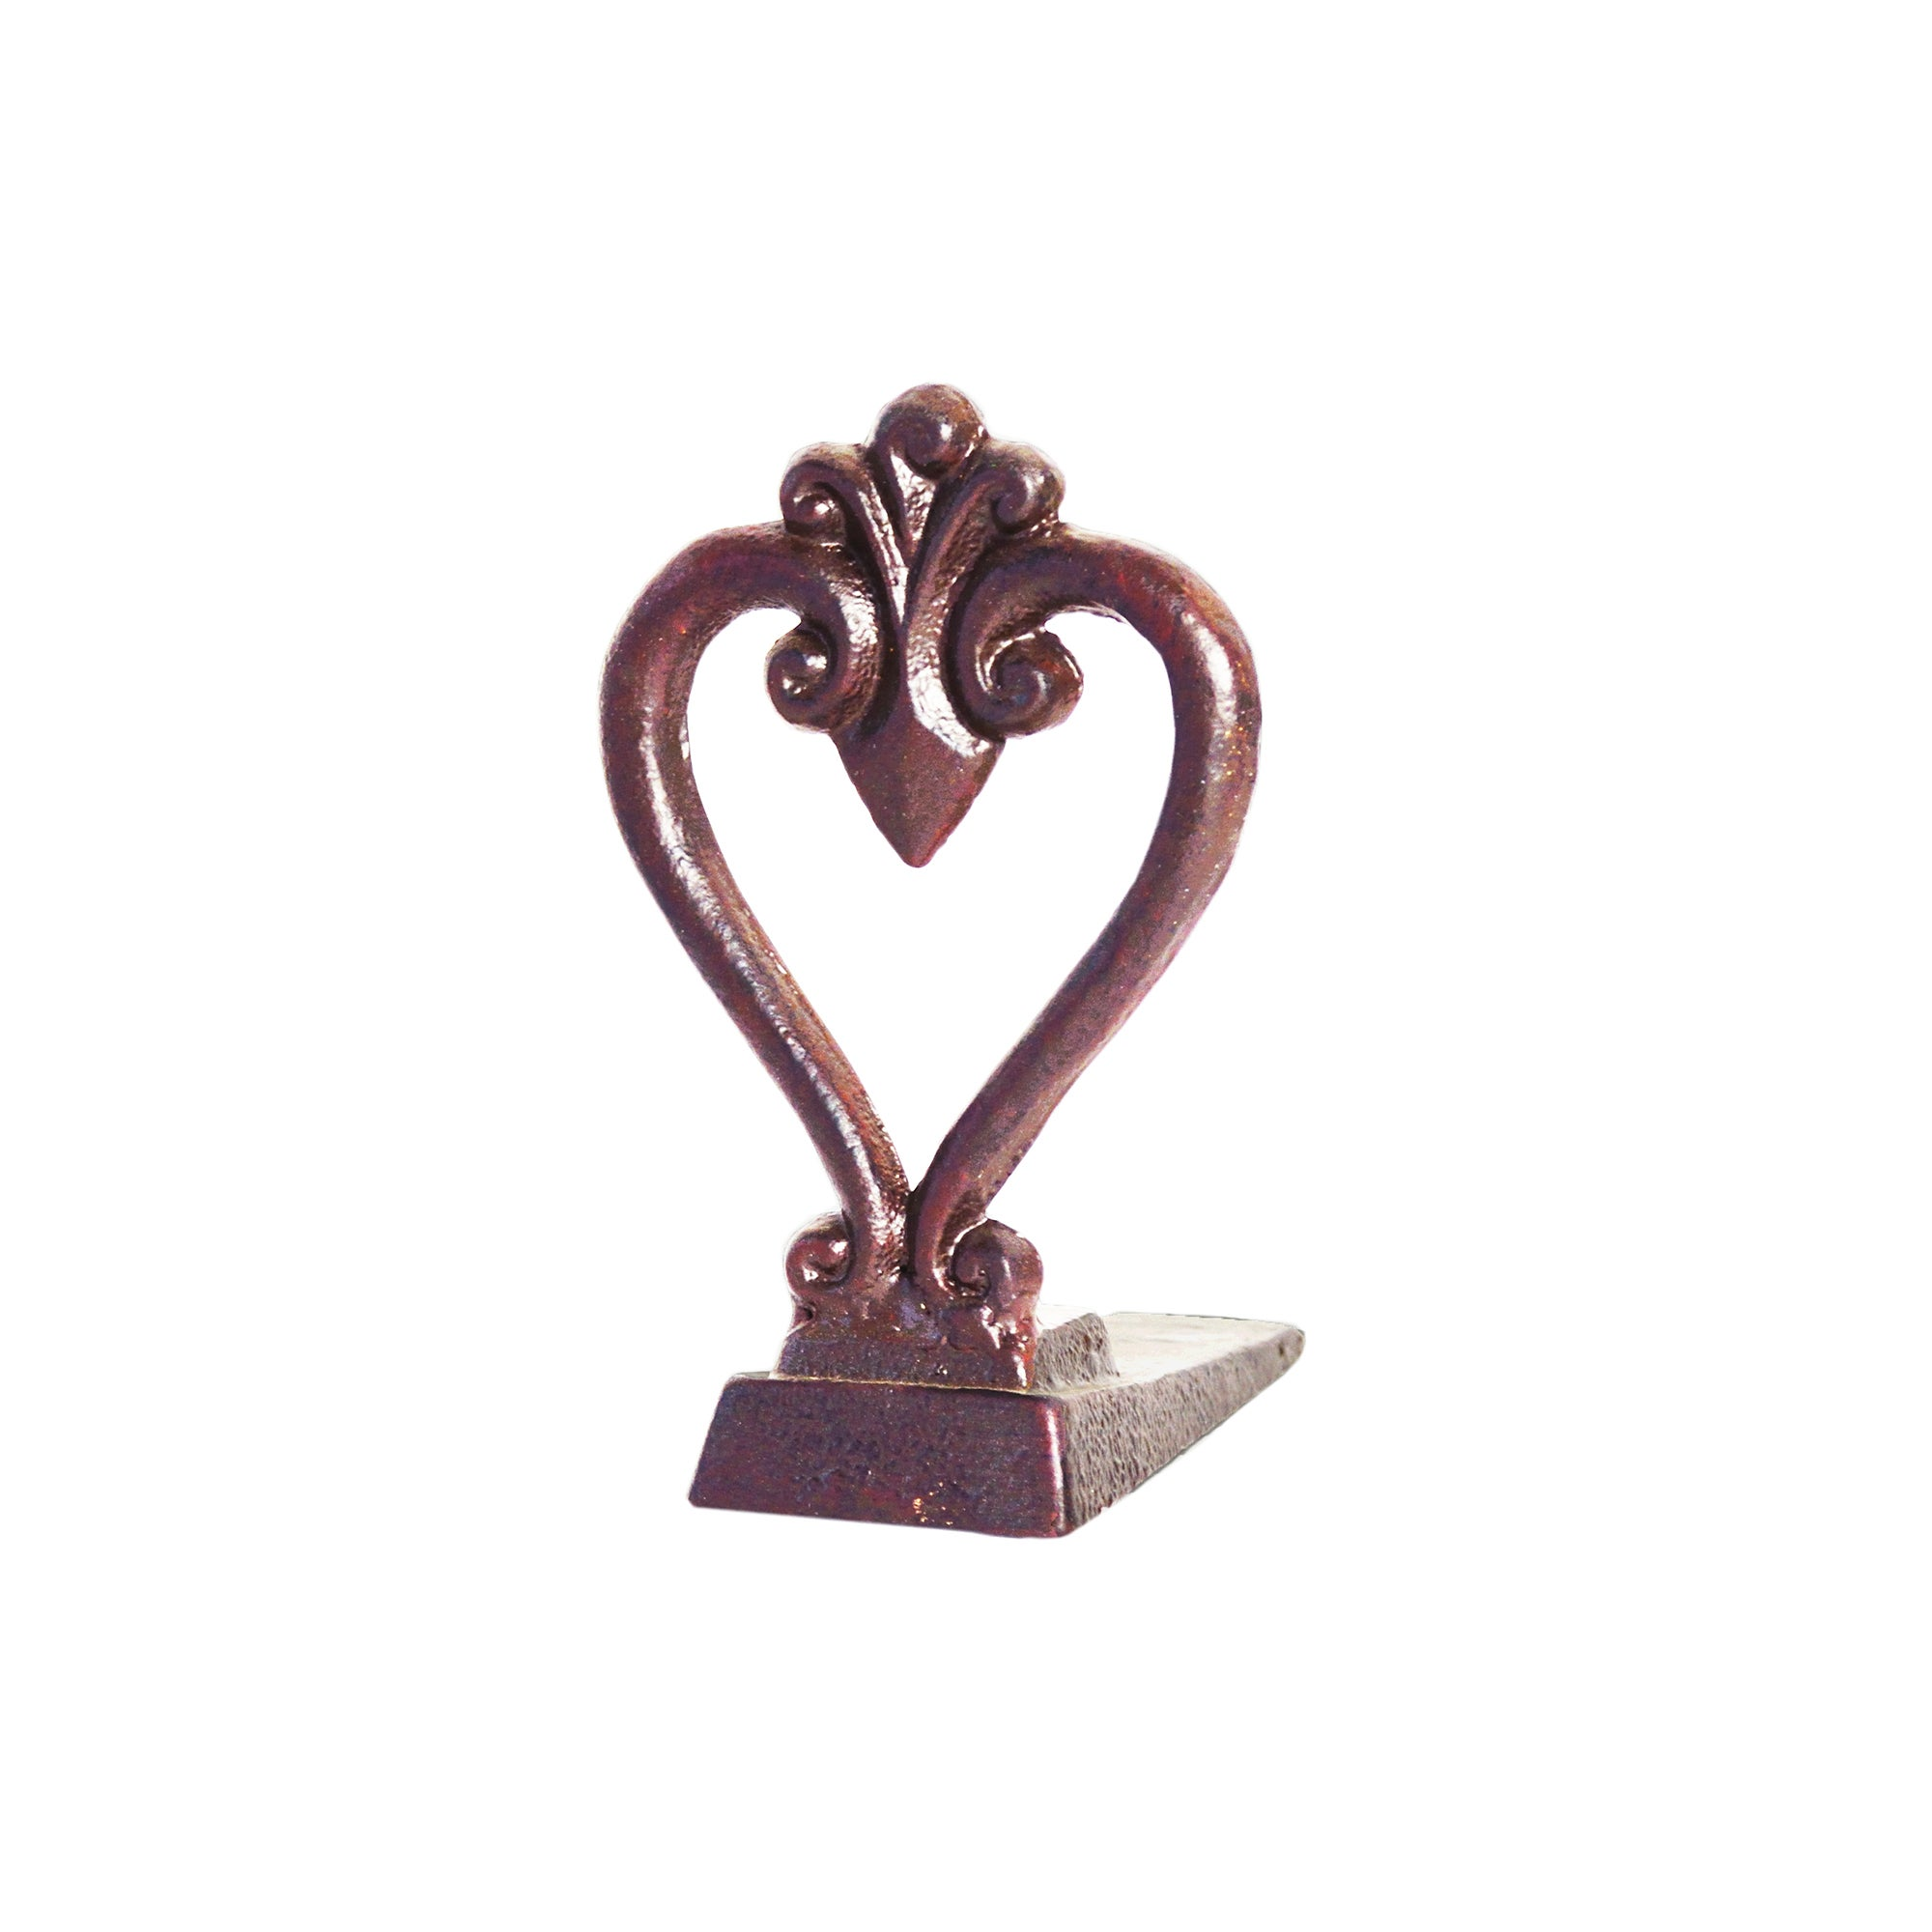 Burnt Sienna Collection Heart with Fleur De Lis Door Stop